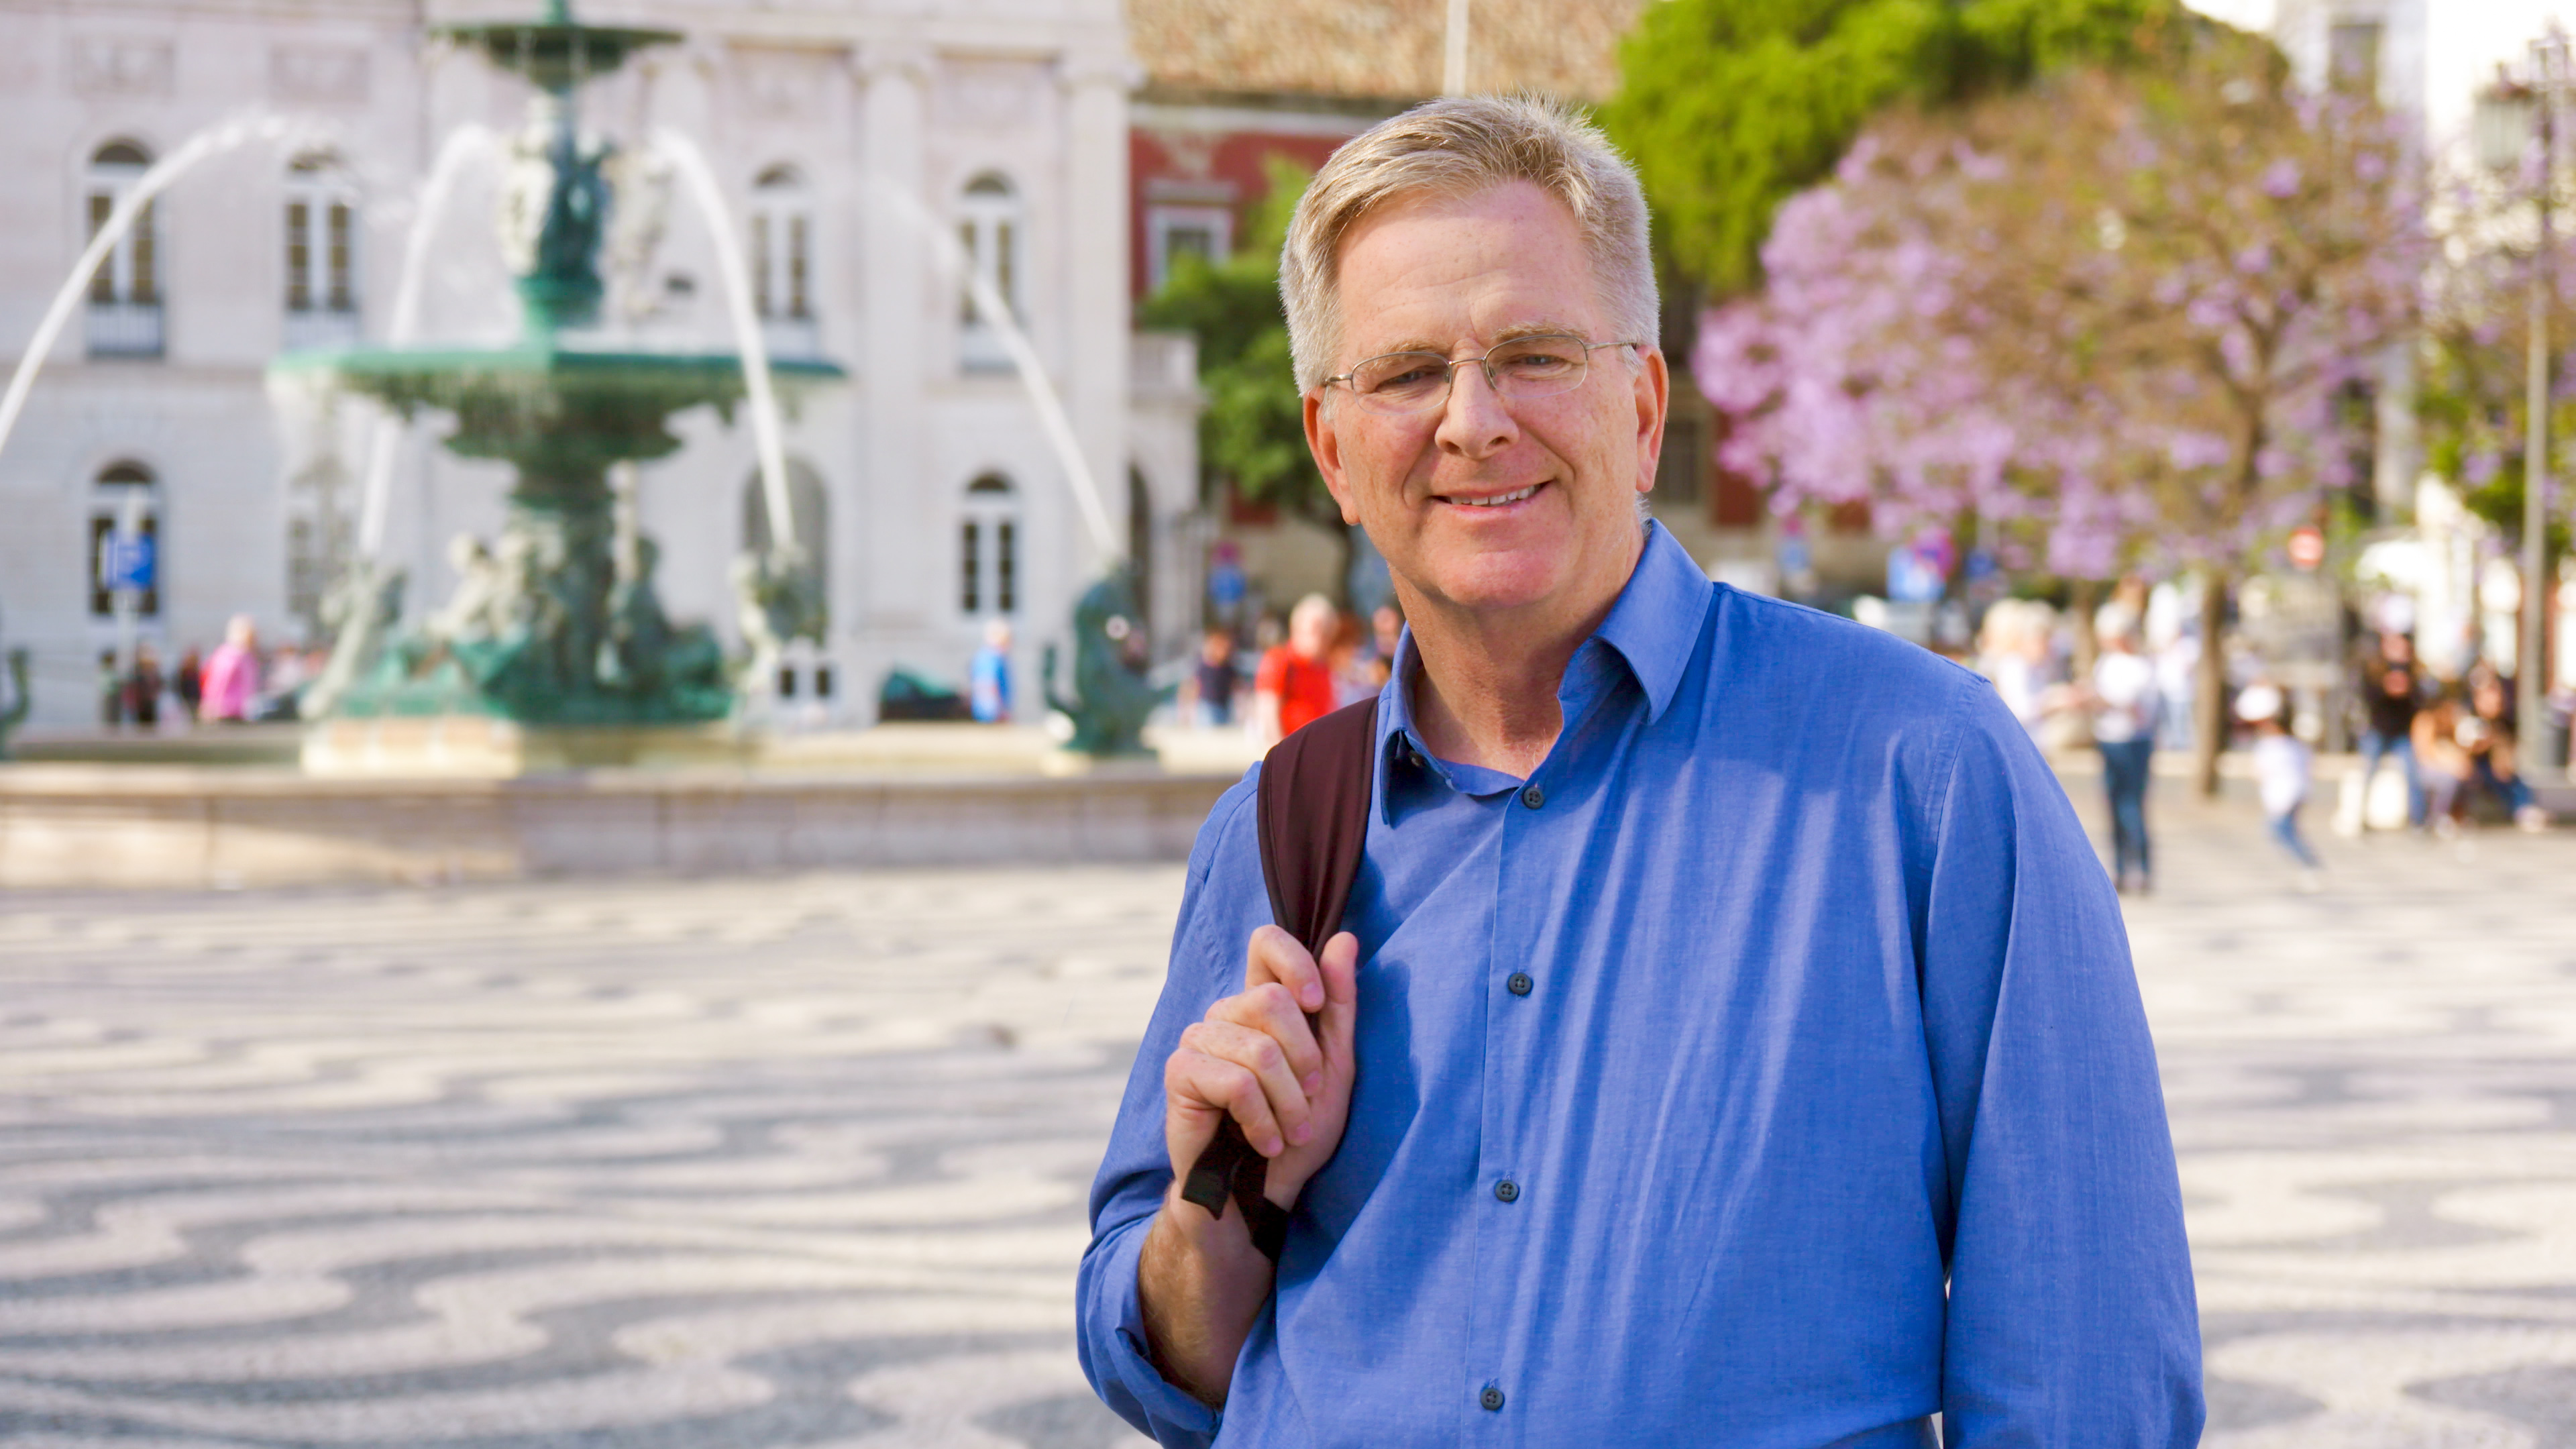 Edmonds native and travel guru Rick Steves may be grounded for now, but he's keeping our travel dreams alive through his 'Daily Dose of Europe,' posts, travel guides and TV shows. (Photo: Rick Steves)